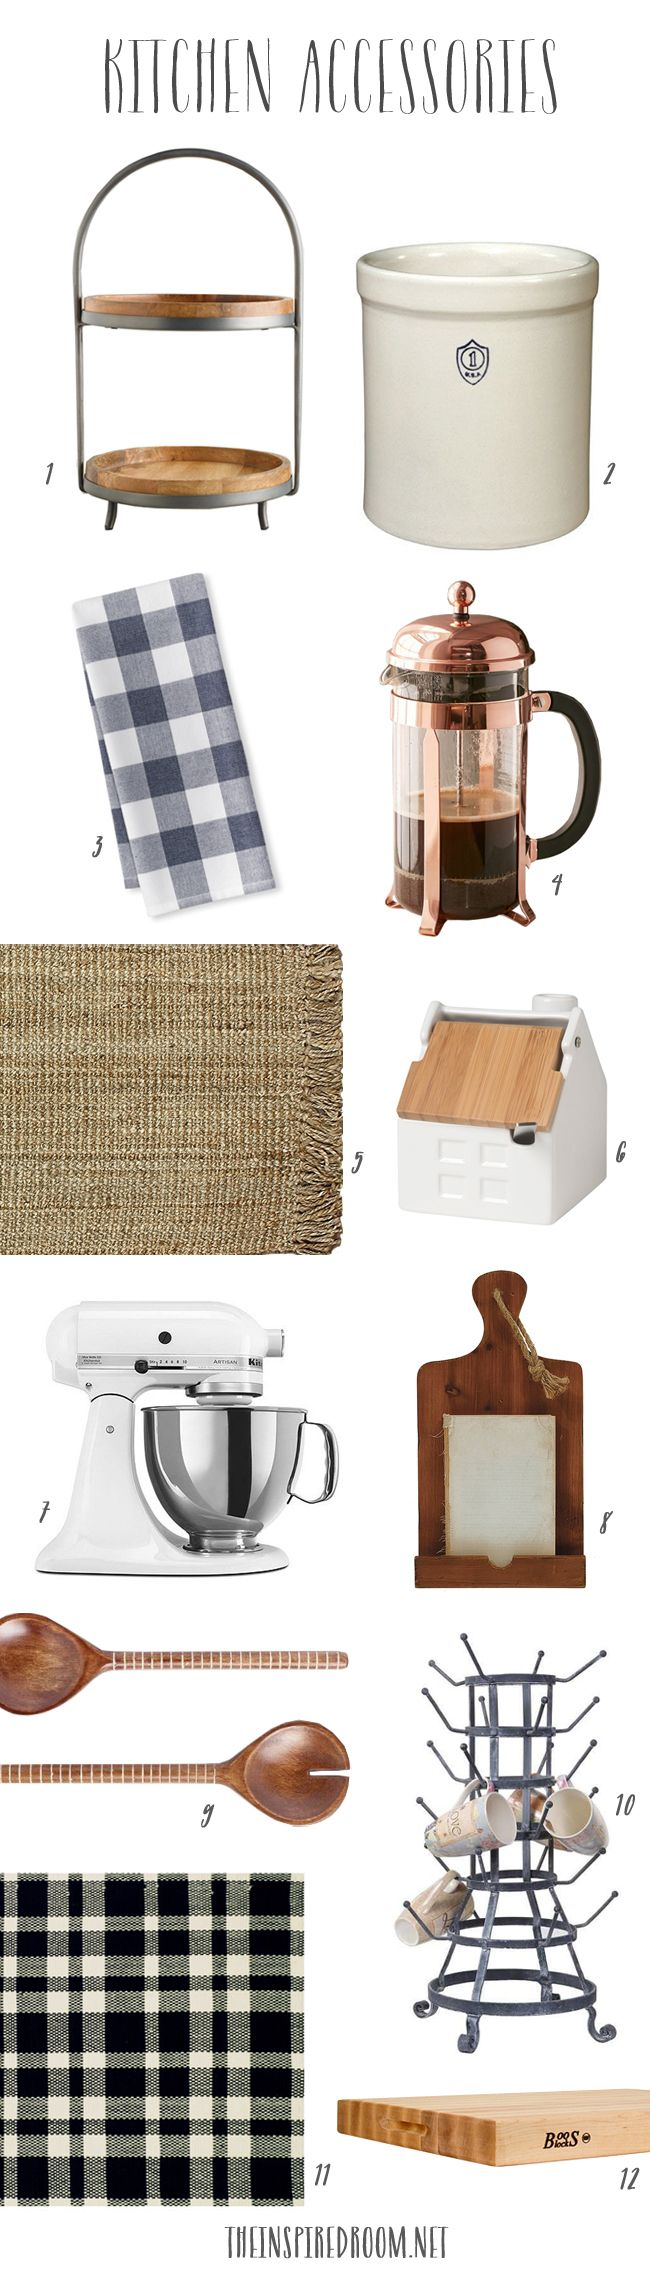 Kitchen Remodel Sources - The Inspired Room